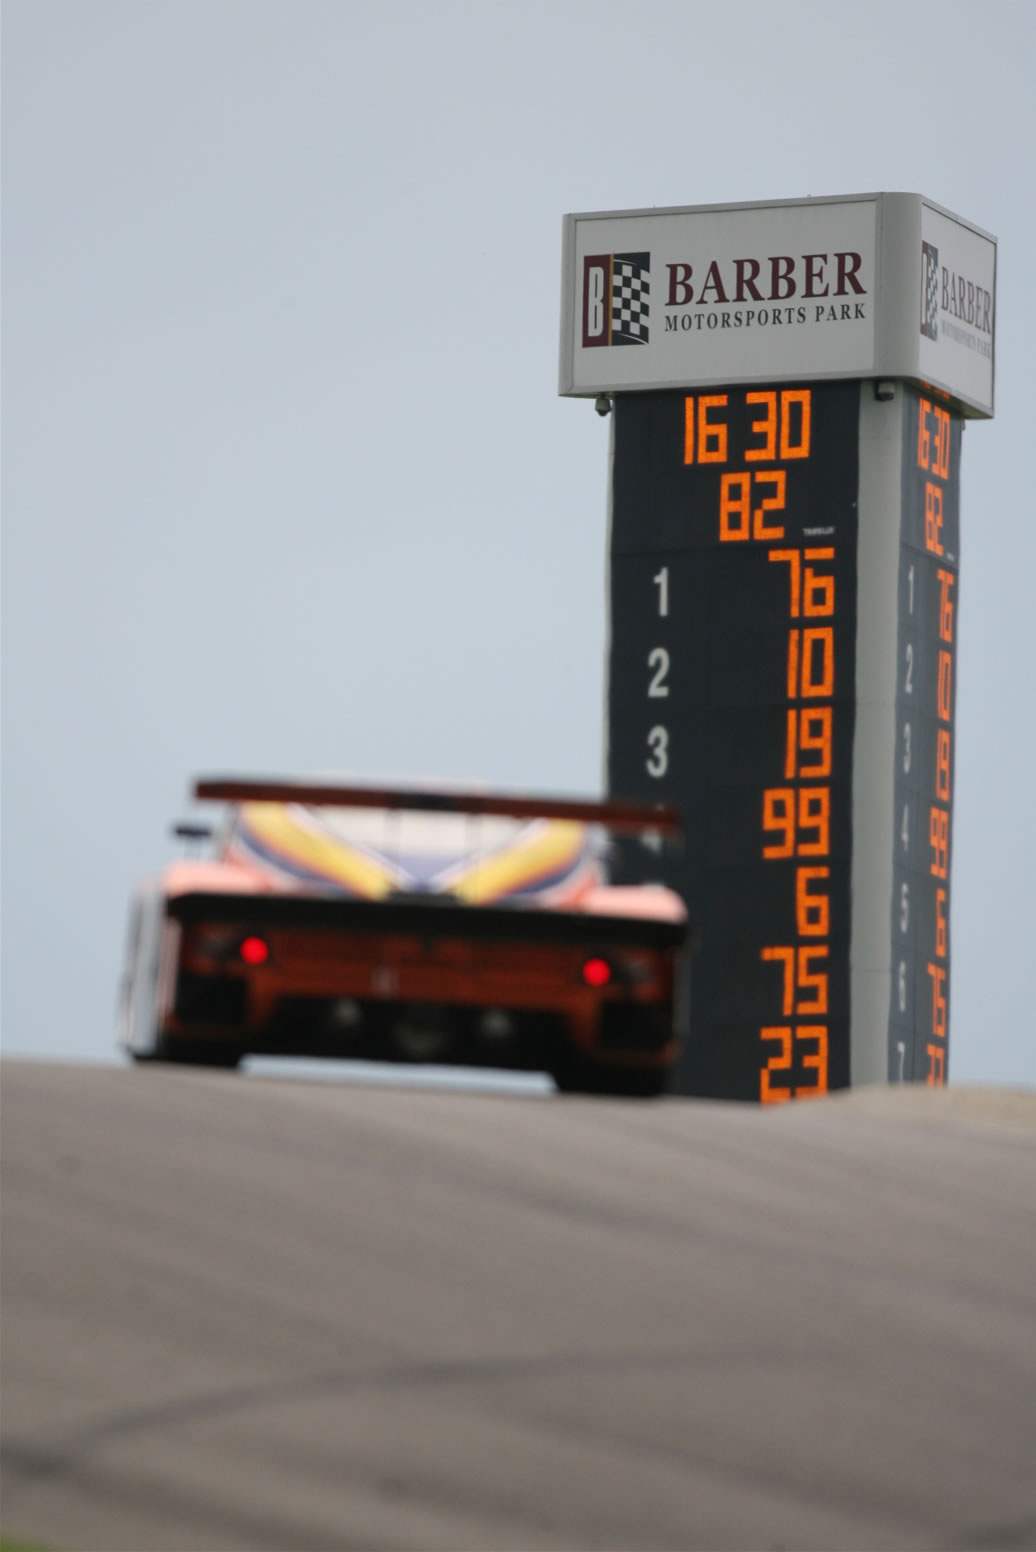 Barber Motorsports Park >> Barber Motorsports Park Releases 2008 Schedule of Events ...